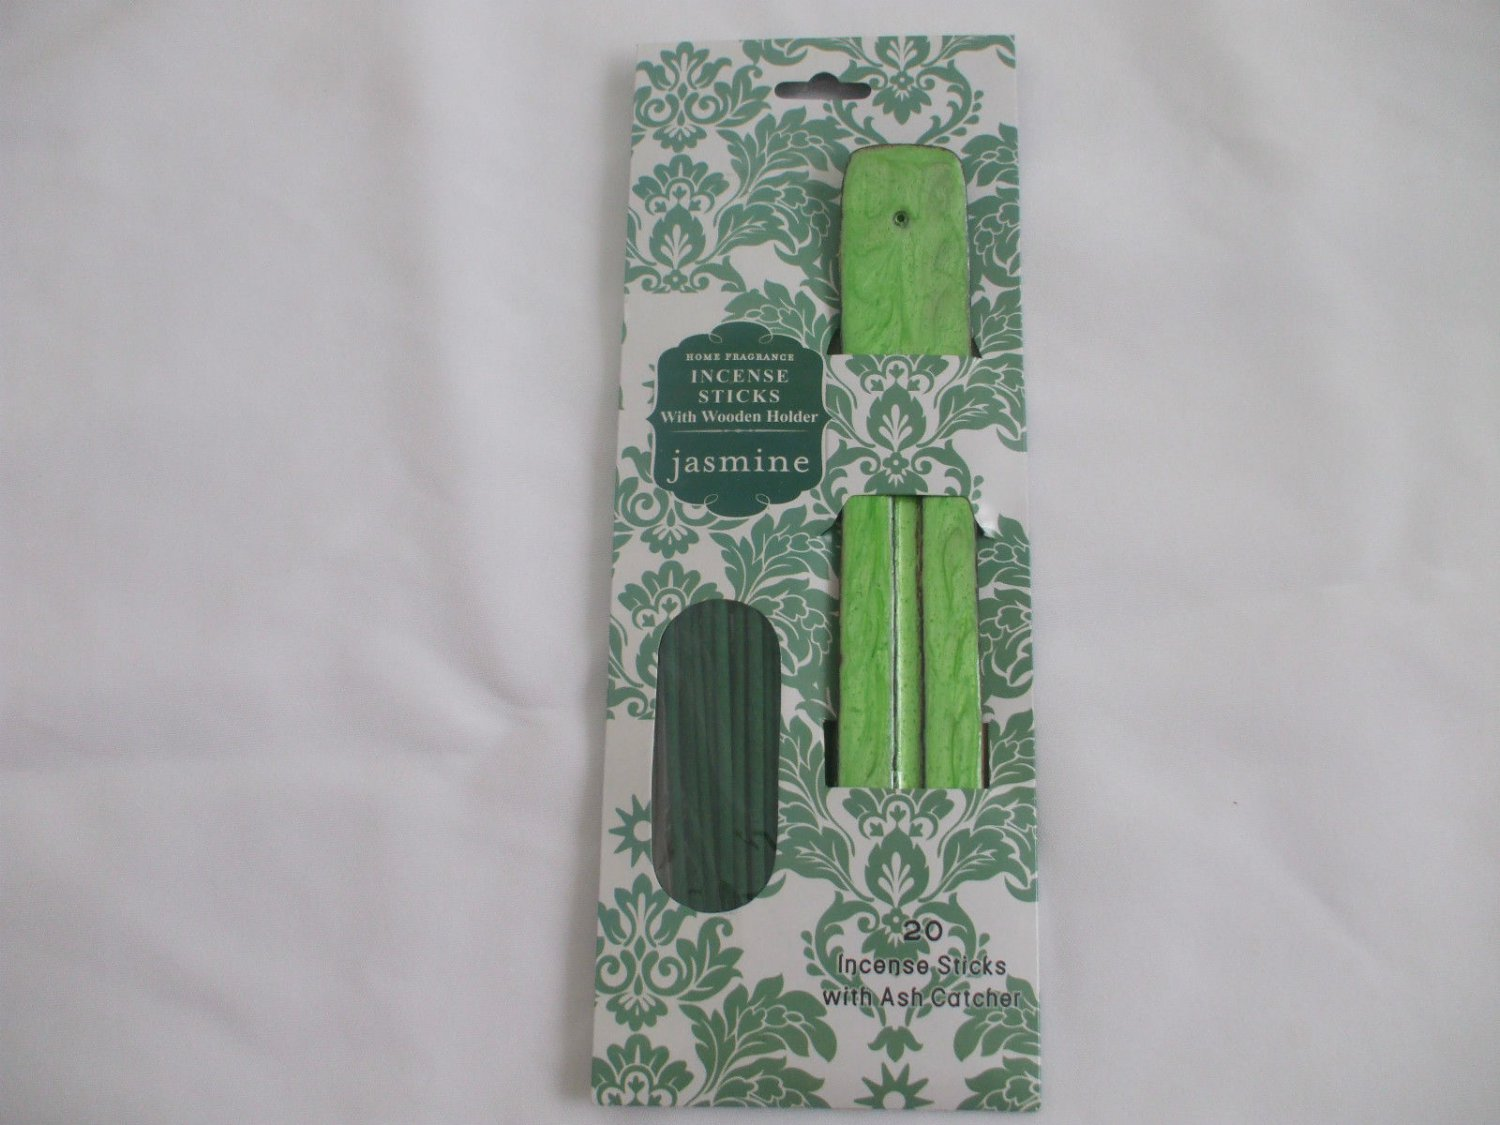 Jasmine Incense Sticks With Green Wooden Ash Catcher Incense Holder 20 Sticks